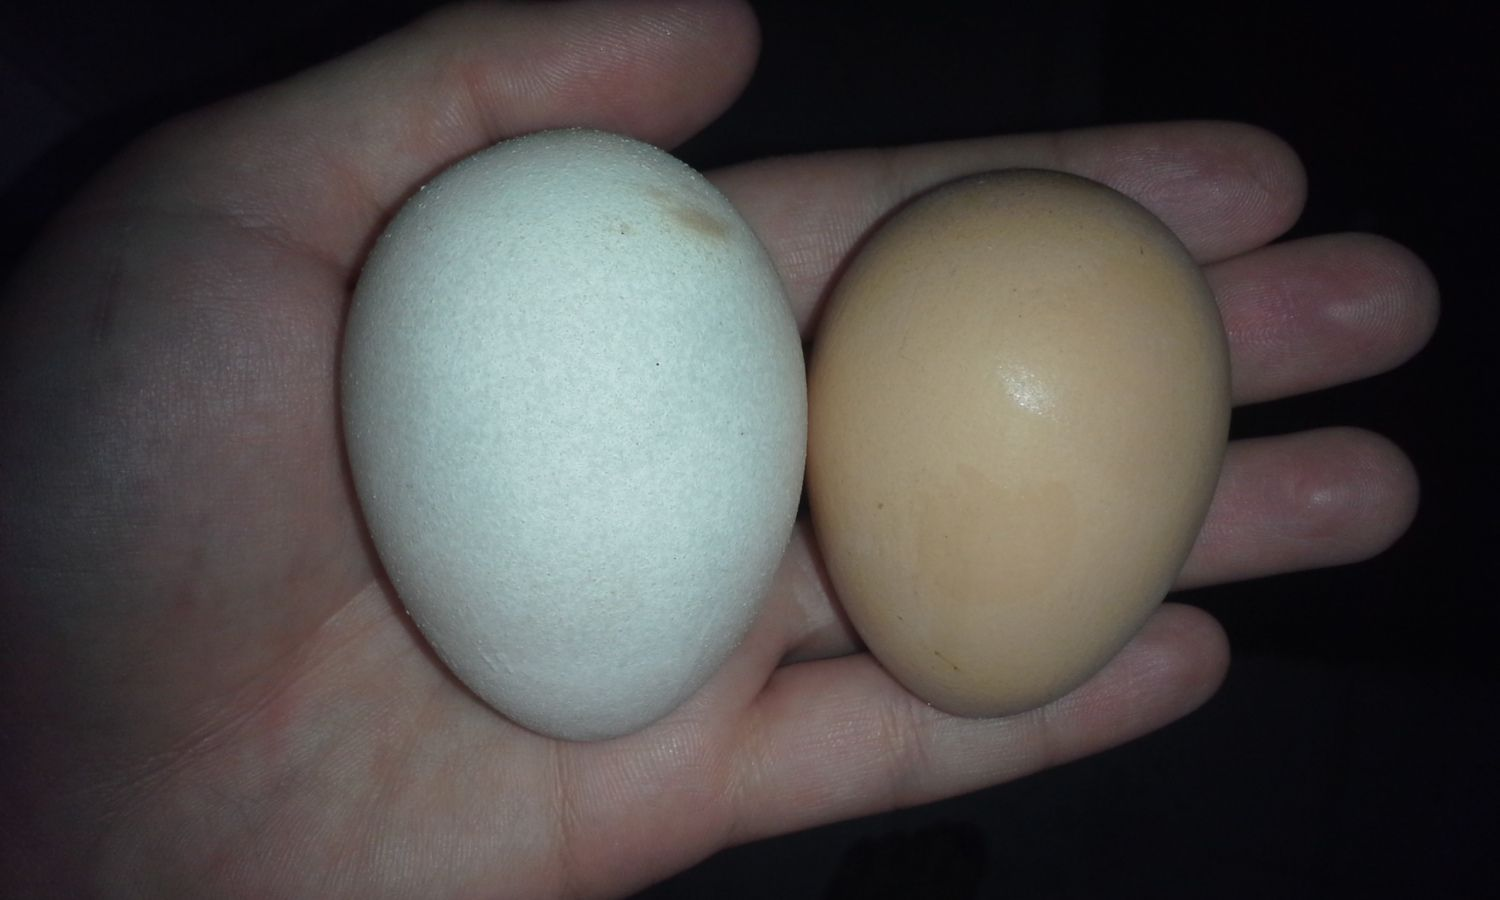 The white egg is the cornish's second egg ever, I feel awful cuz it's huge in person, too big I think for a second try.  She didn't lay for a few days after that one